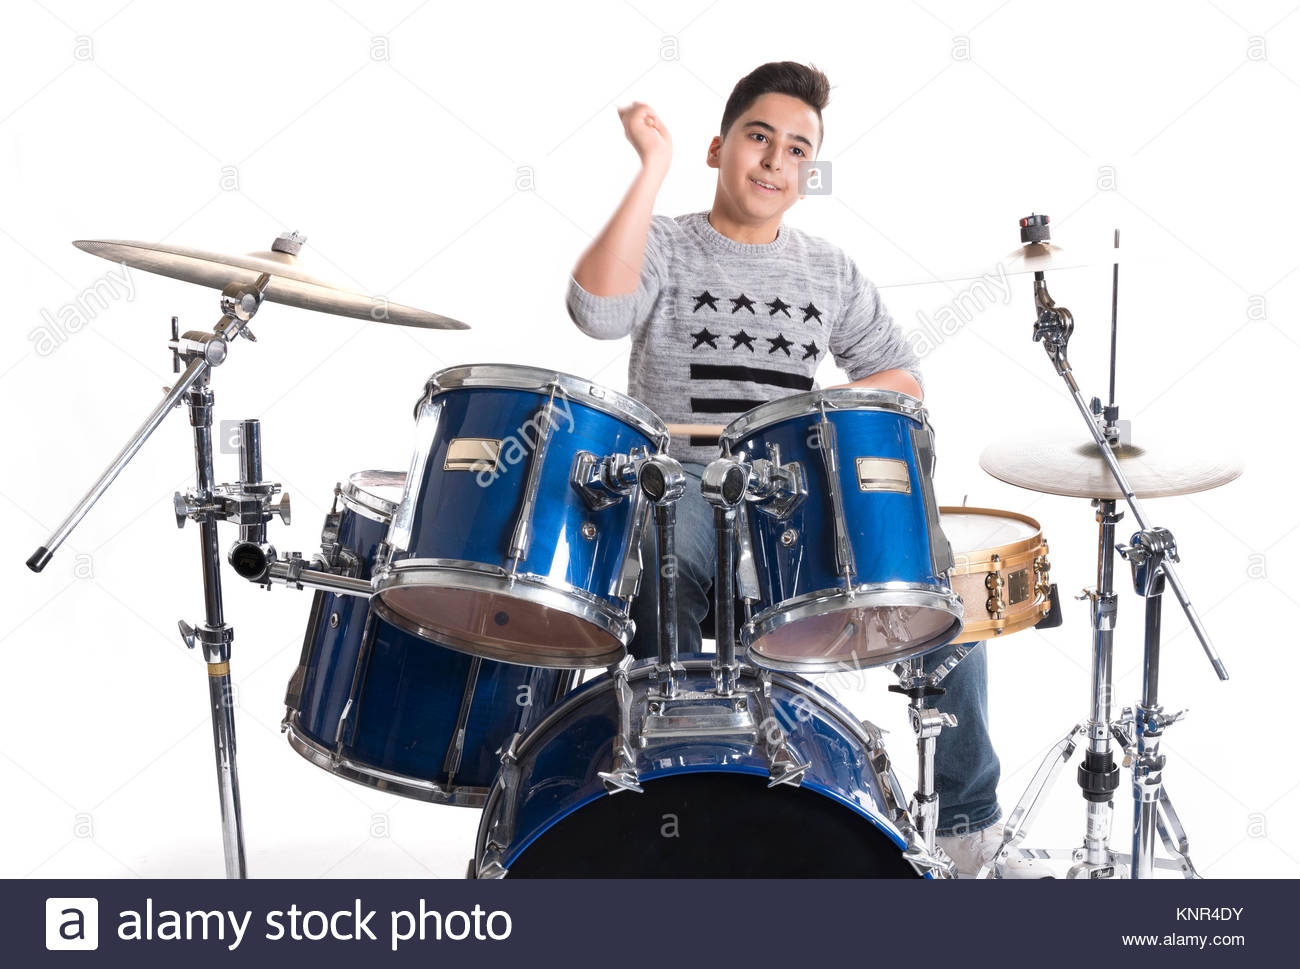 teen boy at drumset in studio against white background Stock Photo 1300x969